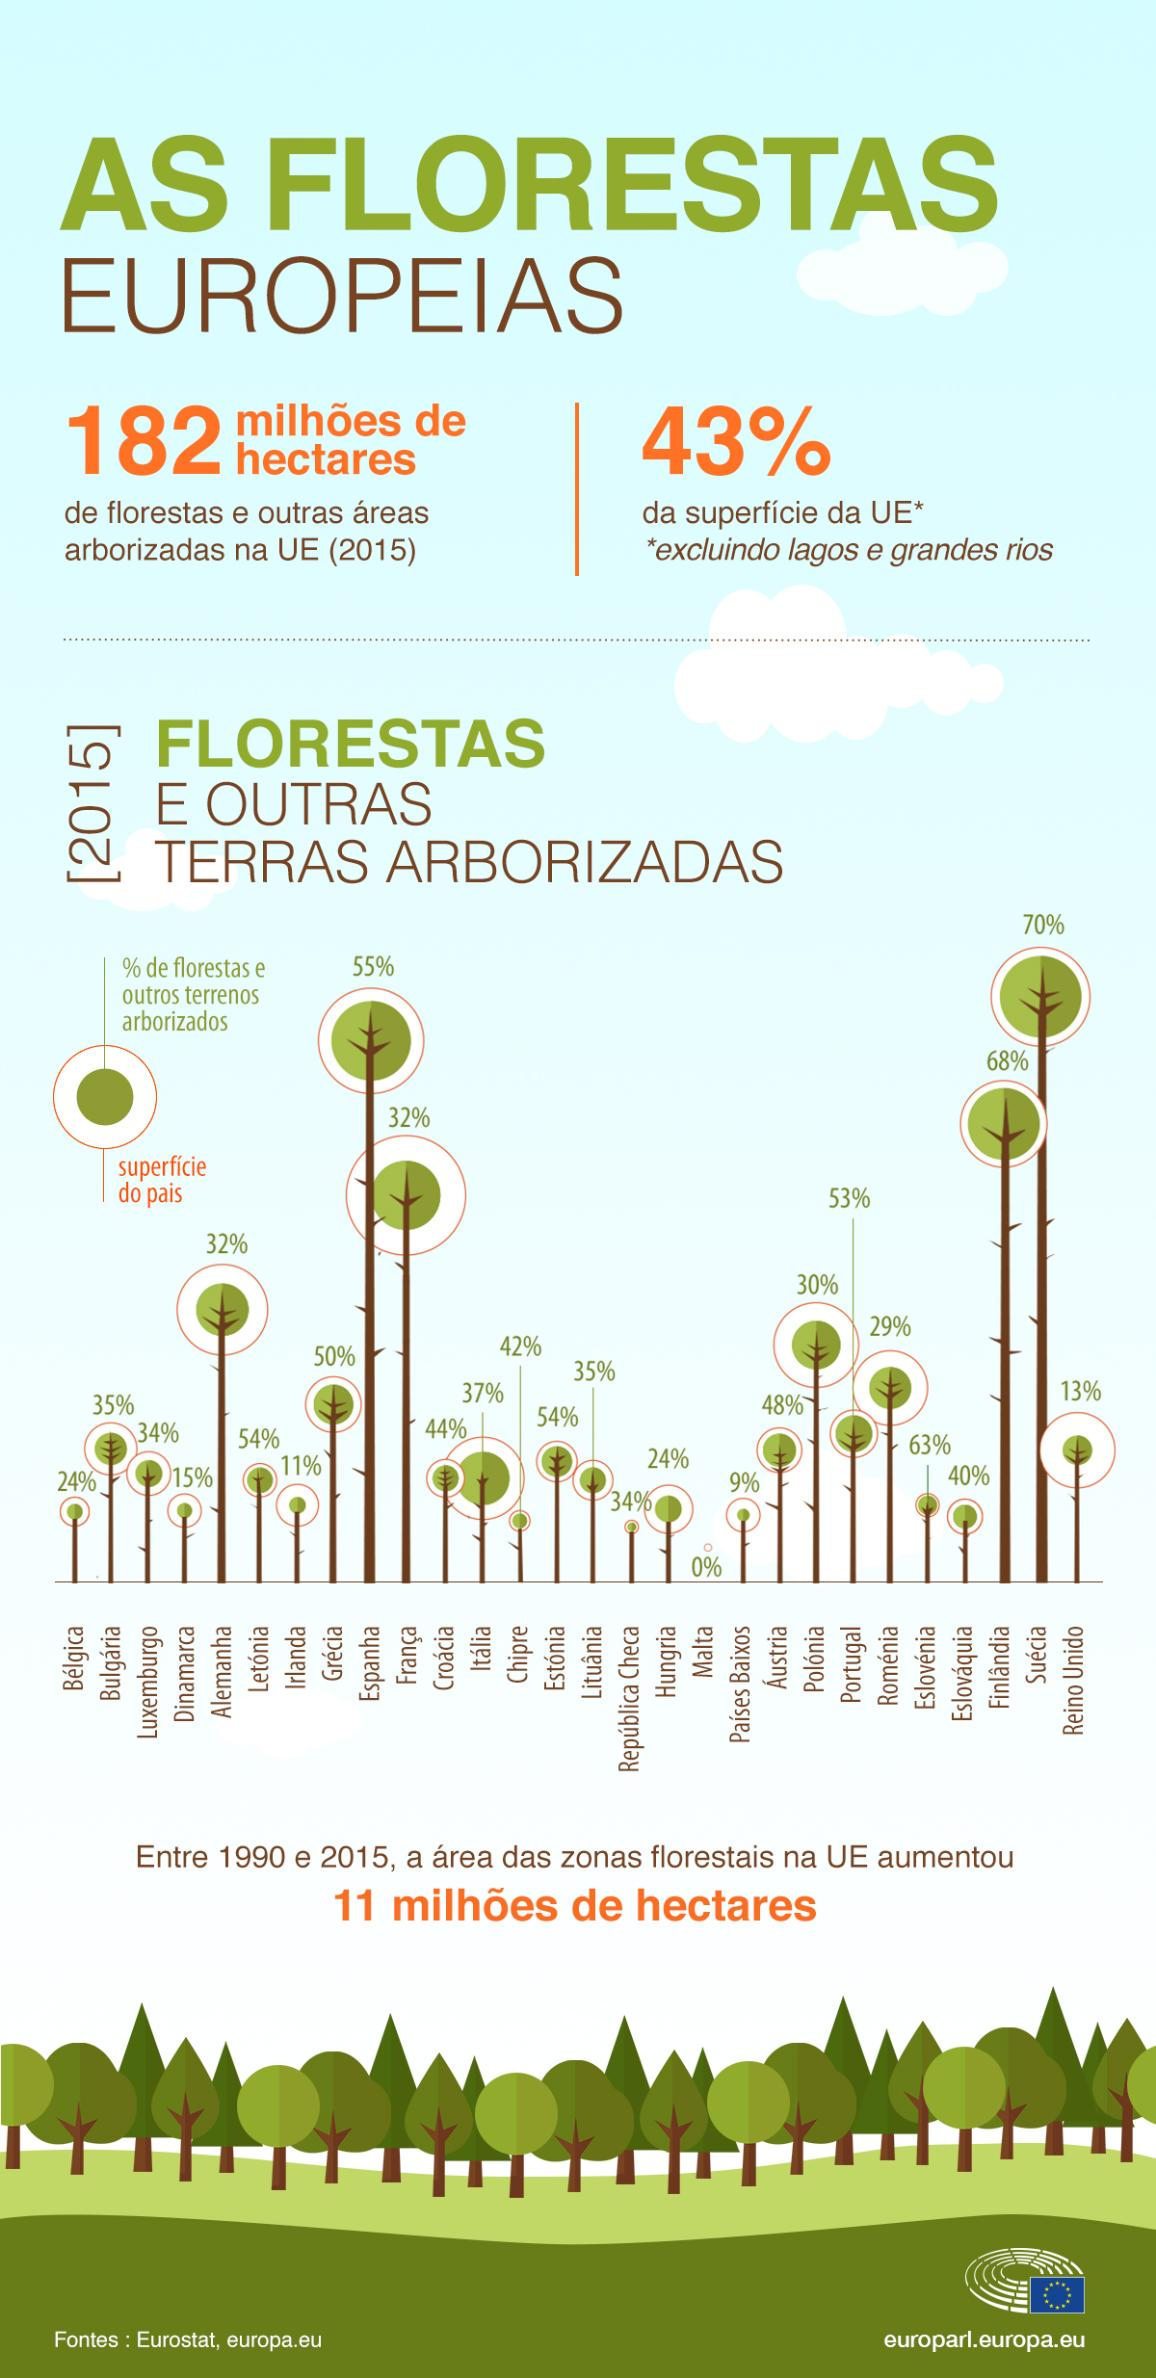 nfografia com dados sobre as florestas europeias